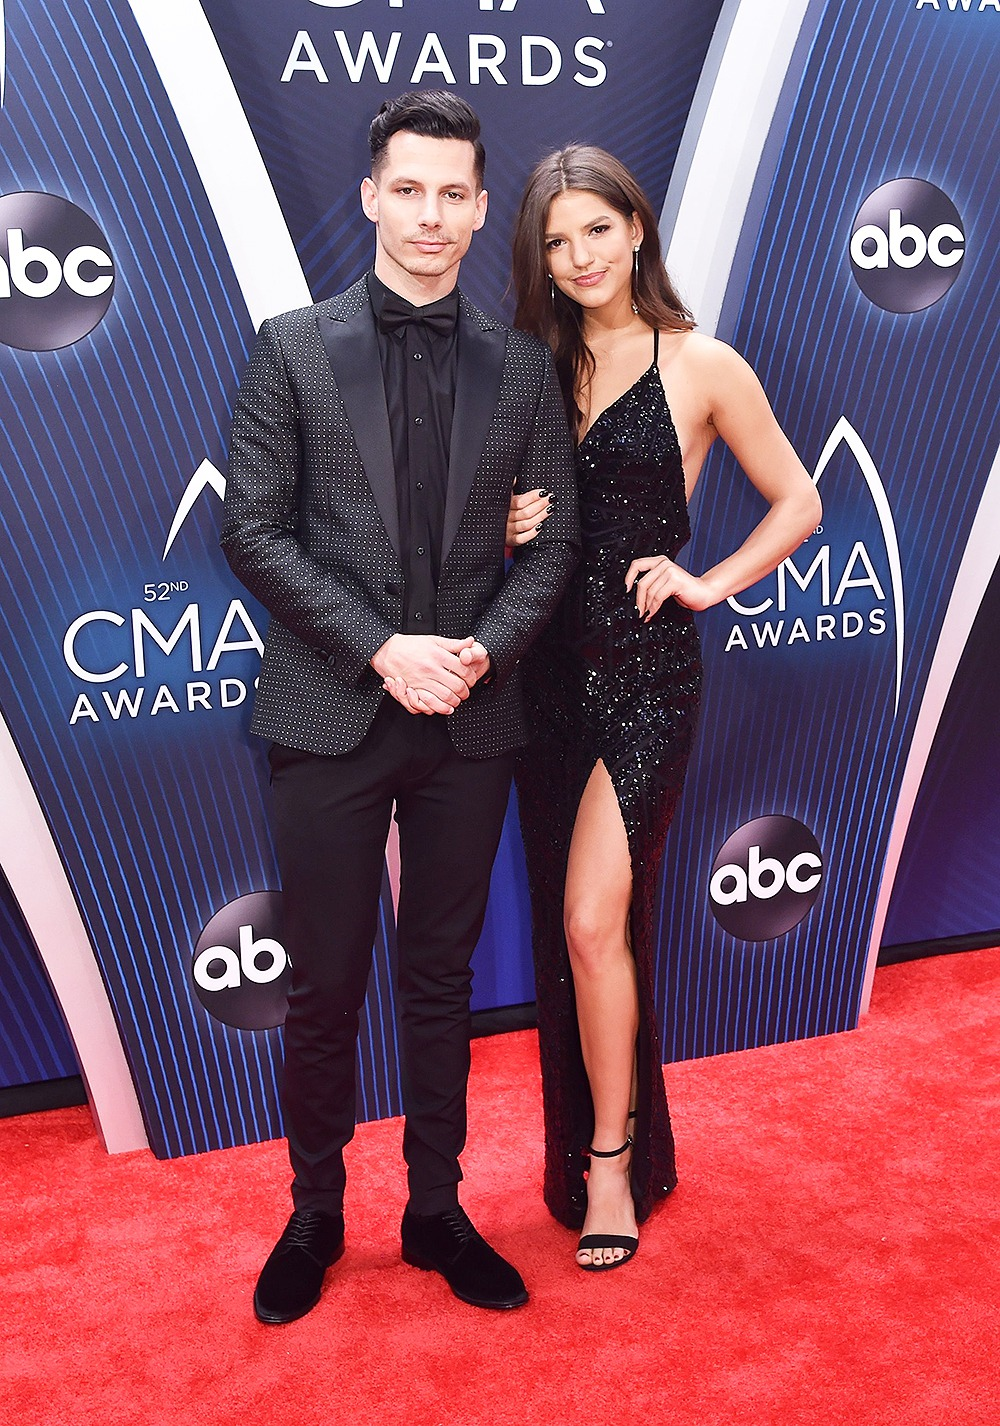 Red Carpet Arrivals At The Cma Awards 2018